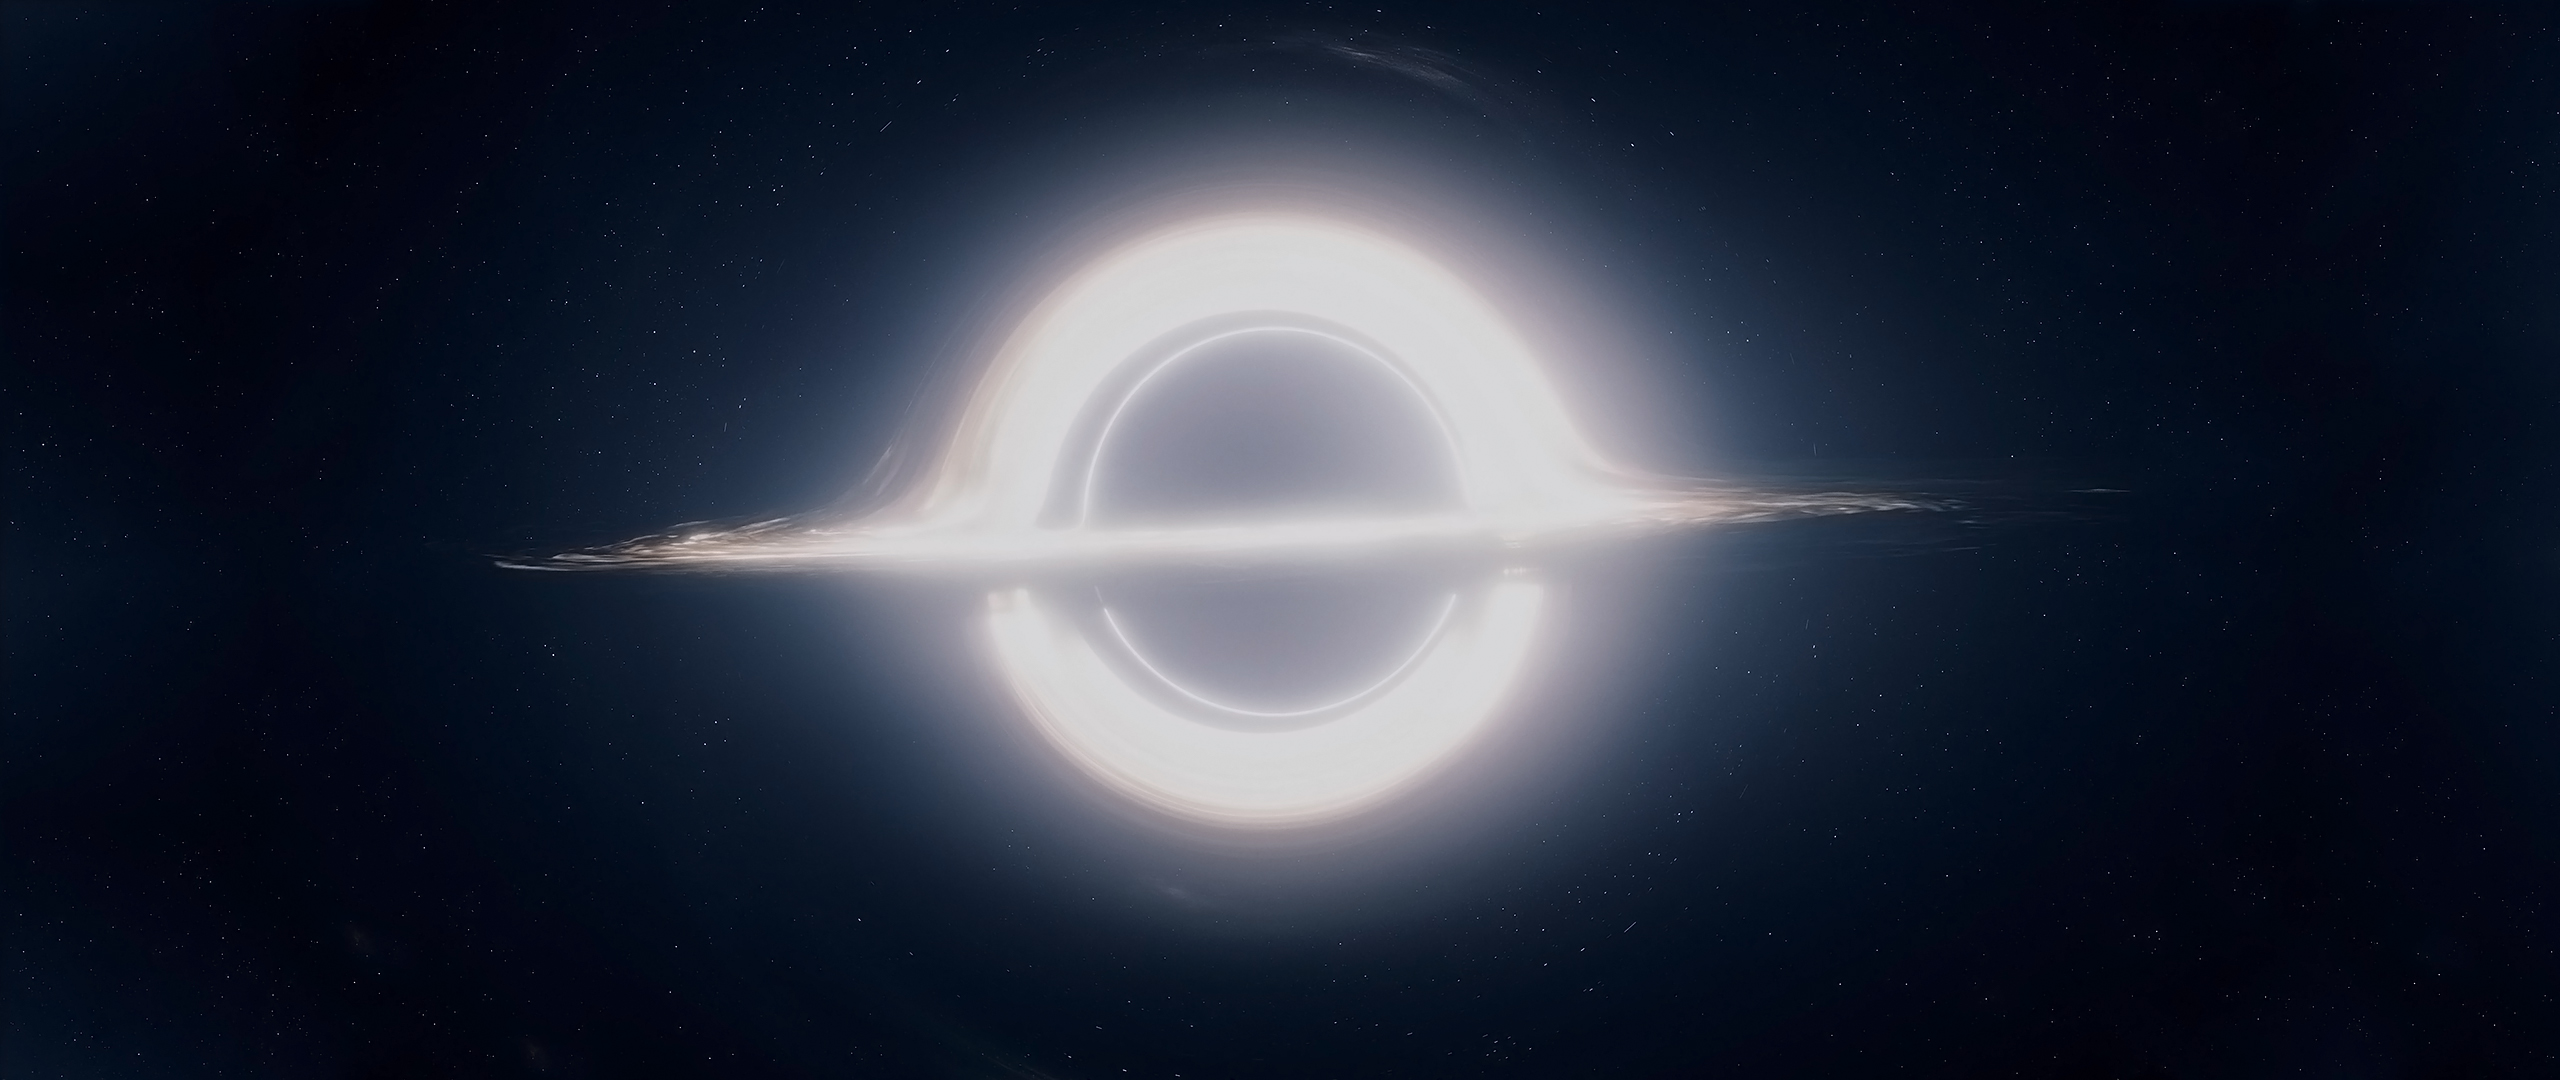 Black-Hole-HD-Backgrounds-Images-Pics-Photos-Free-wallpaper-wp3603415